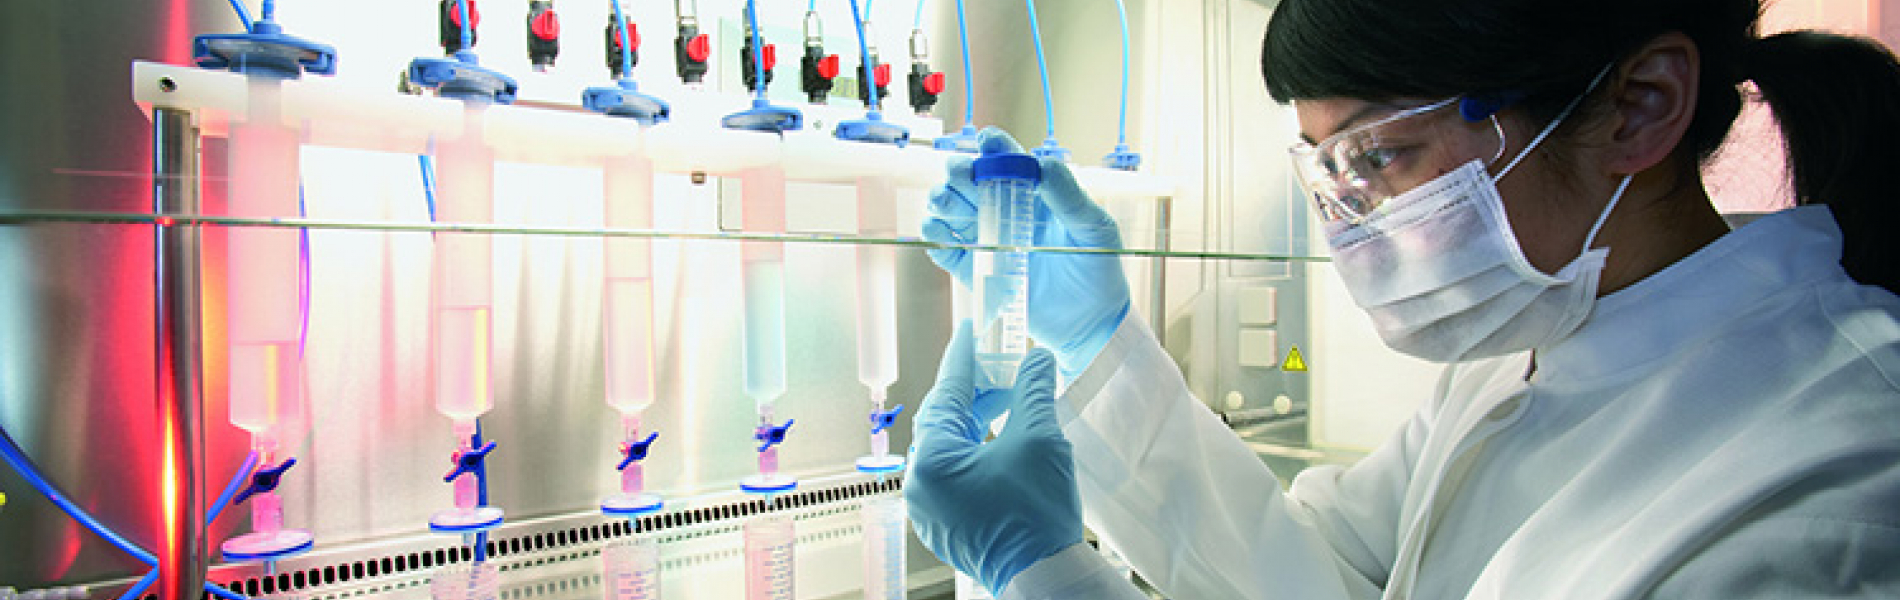 Biotechnology Manufacturing: The Future is Now